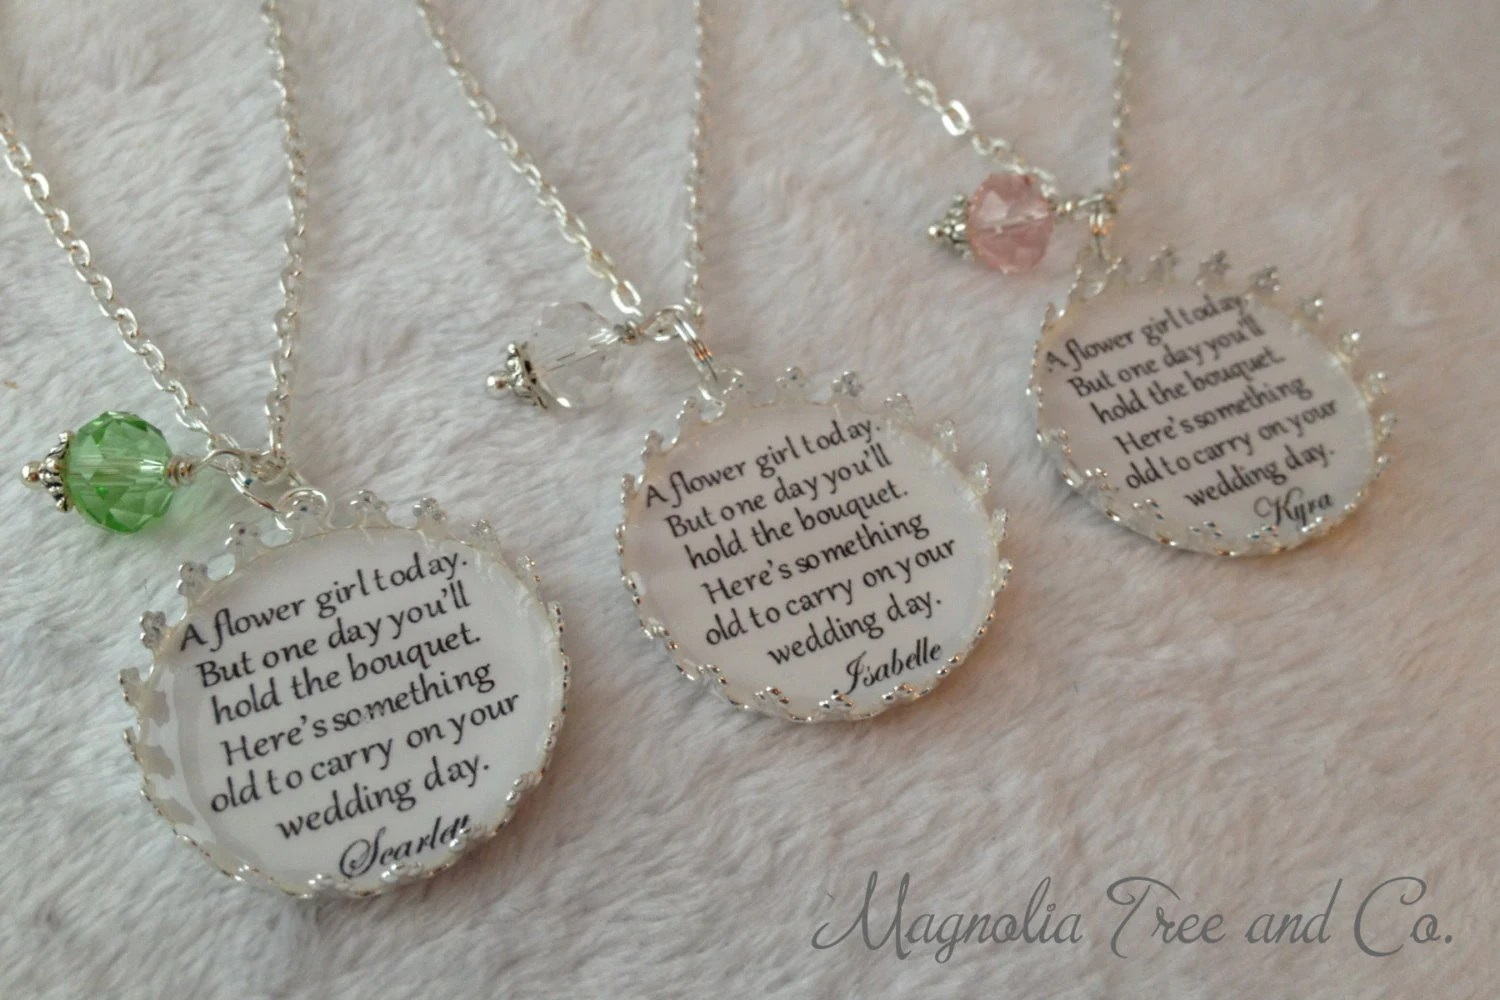 Flower Girl Necklace Bridesmaid Necklace Personalized Bridal image 4